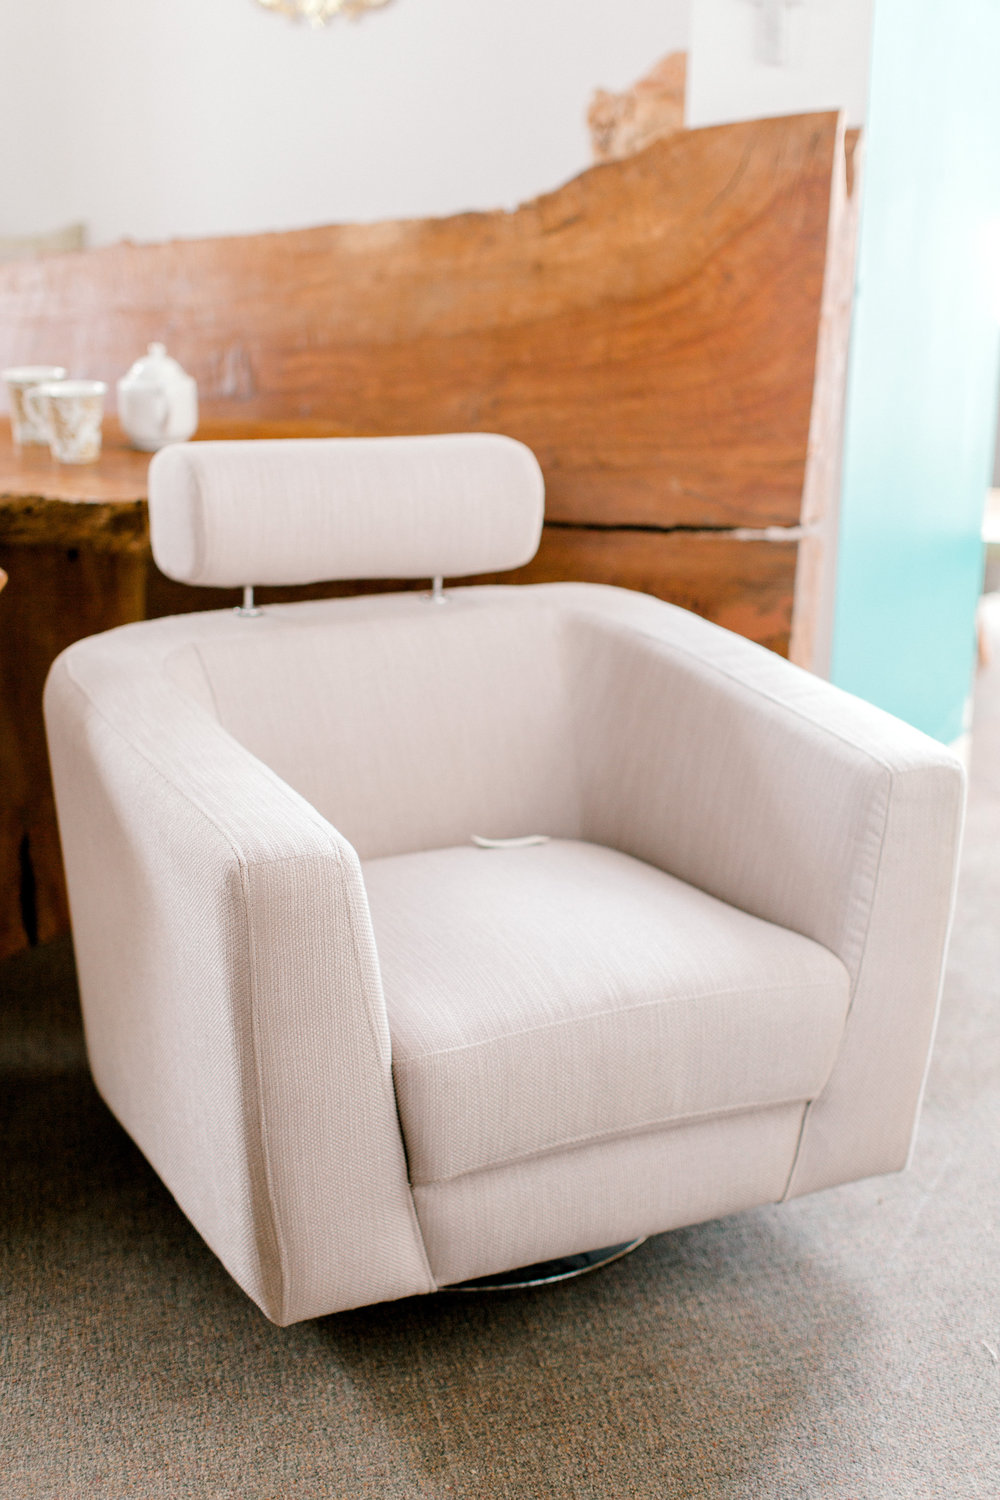 Sean Chair. Swivel chair with adjustable back rest. Blue Moon Furniture.